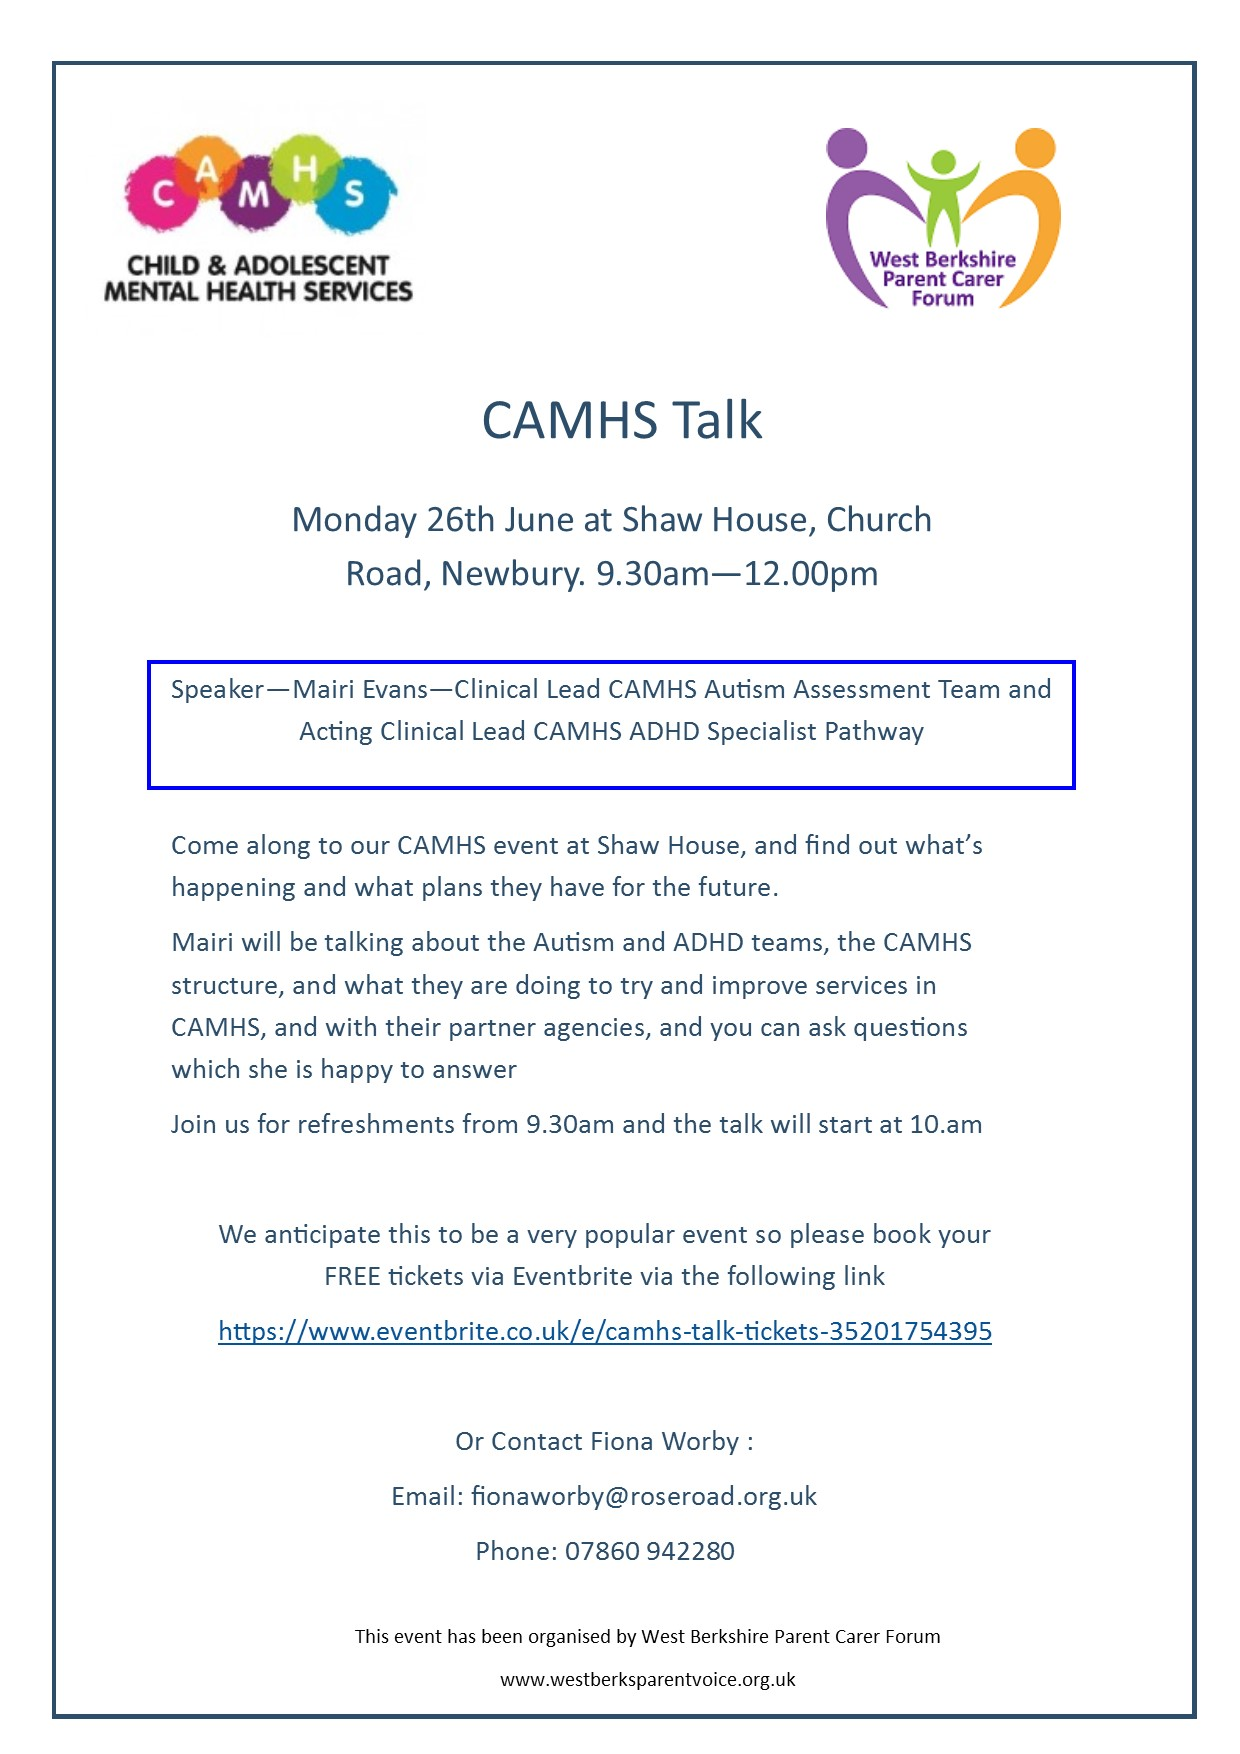 CAMHS Talk Flyer